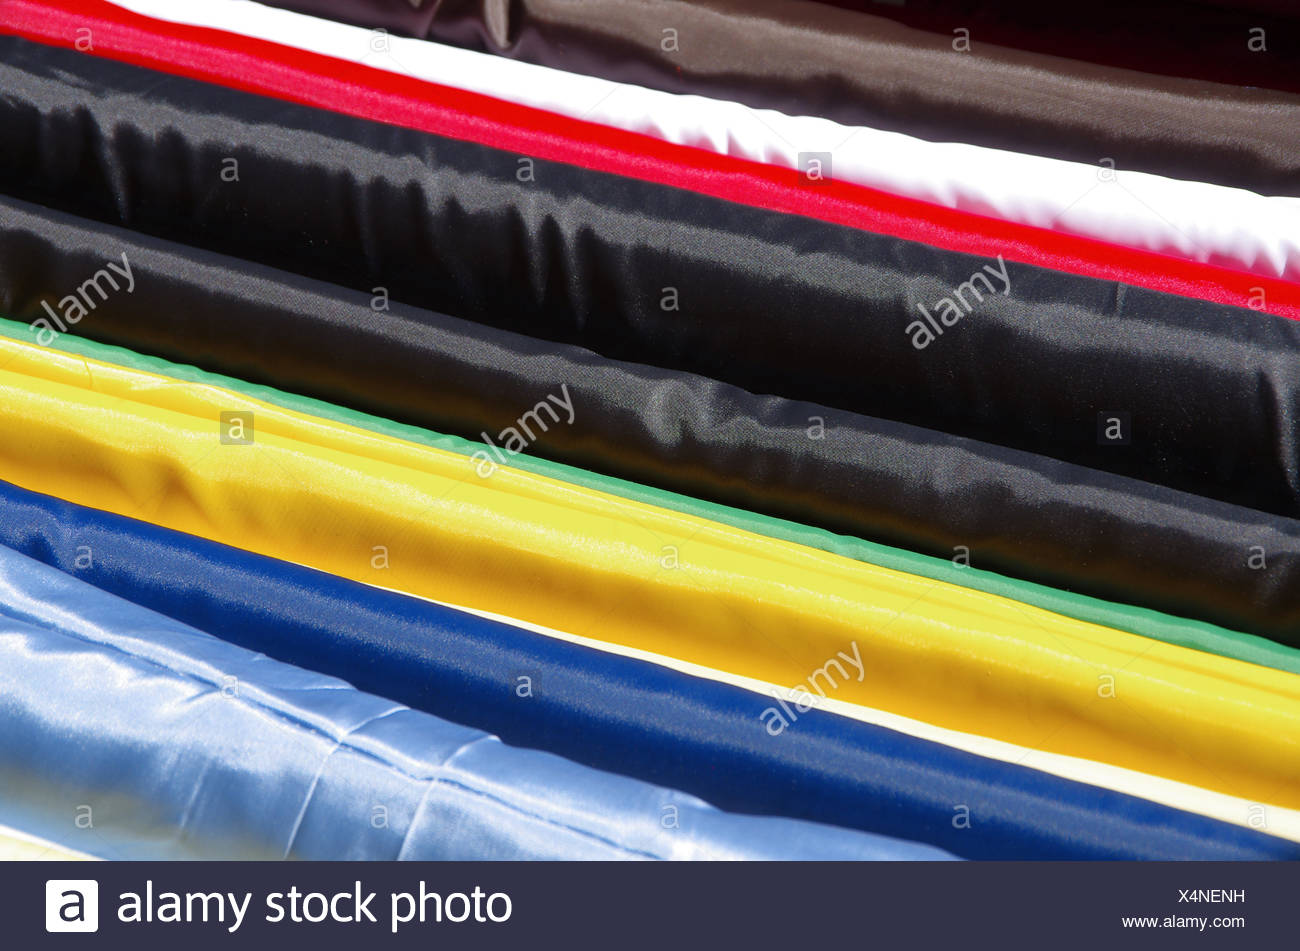 bale of cloths - Stock Image